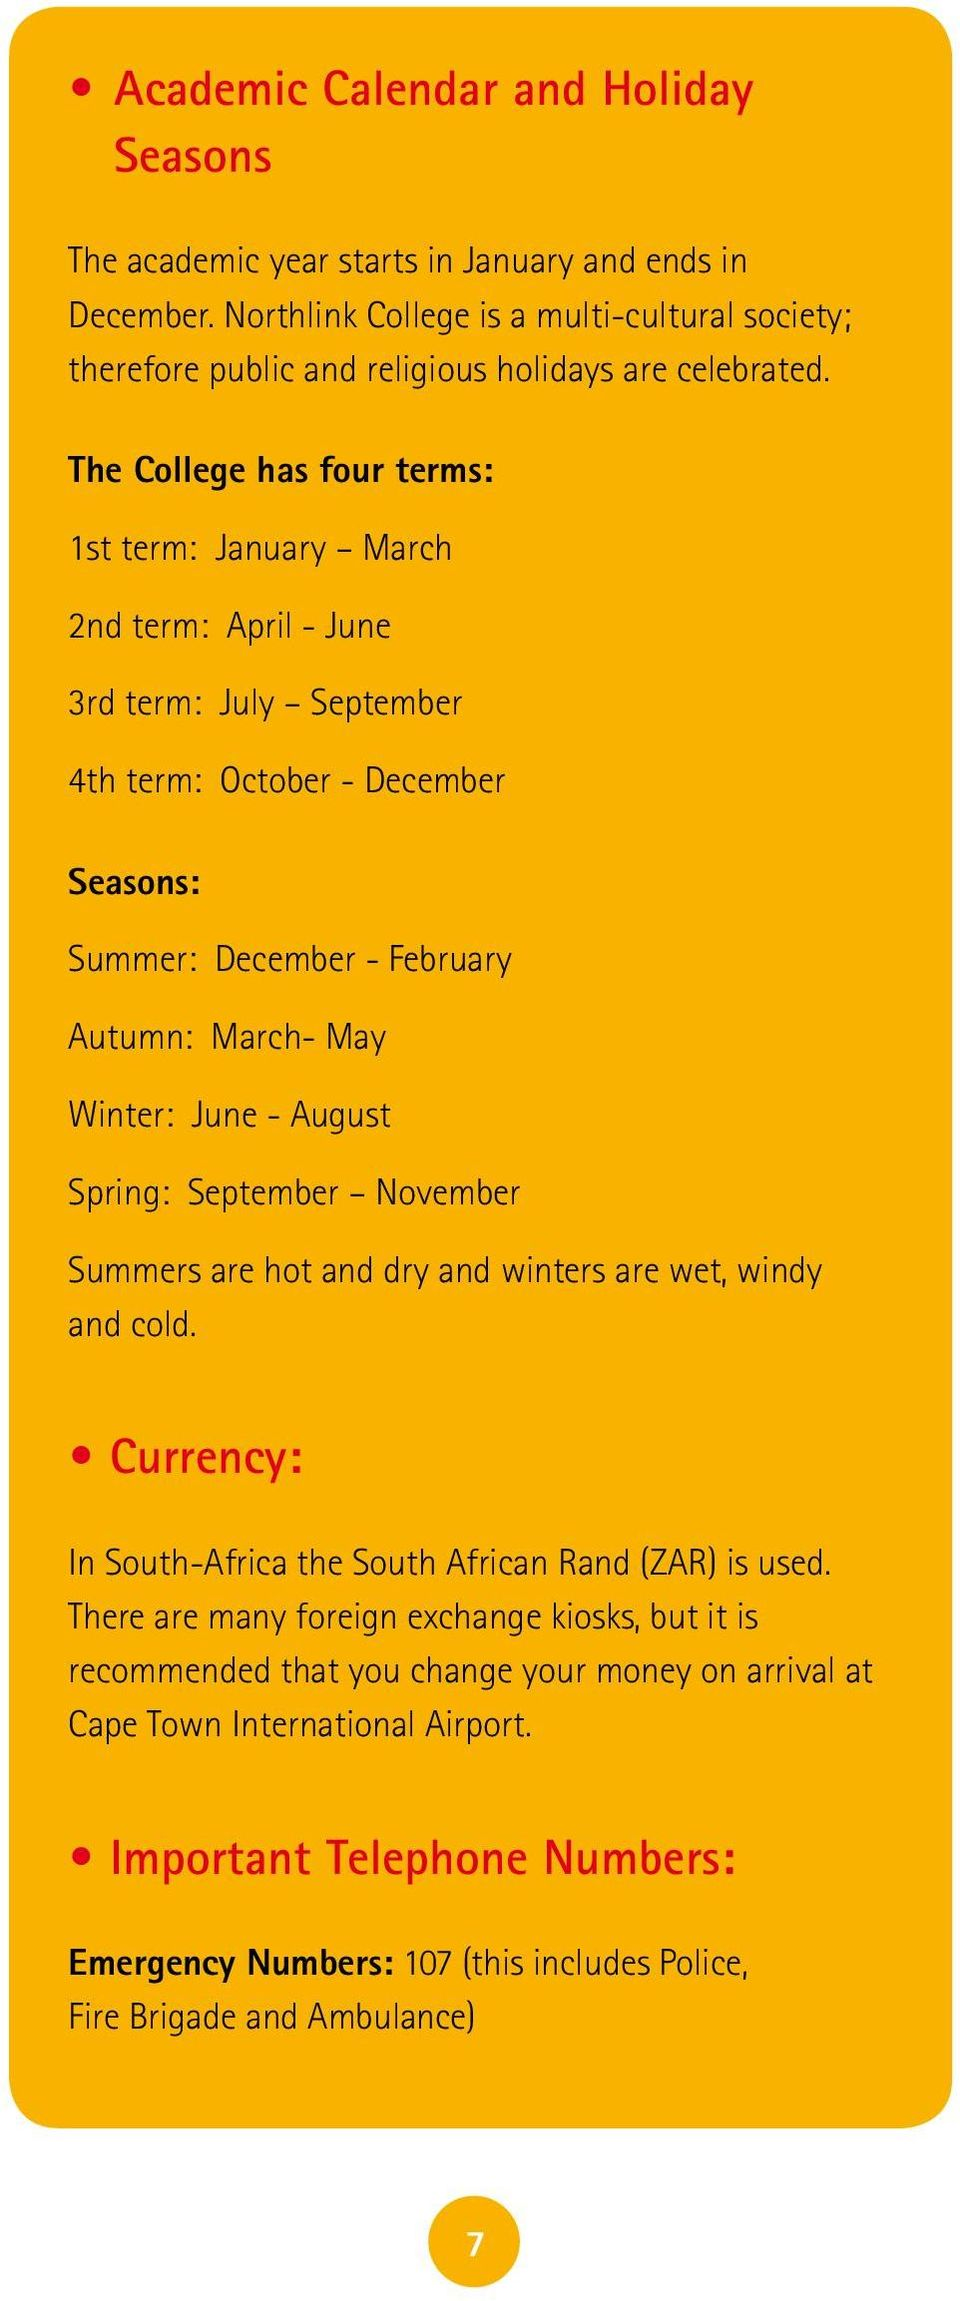 August Spring: September November Summers are hot and dry and winters are wet, windy and cold. Currency: In South-Africa the South African Rand (ZAR) is used.